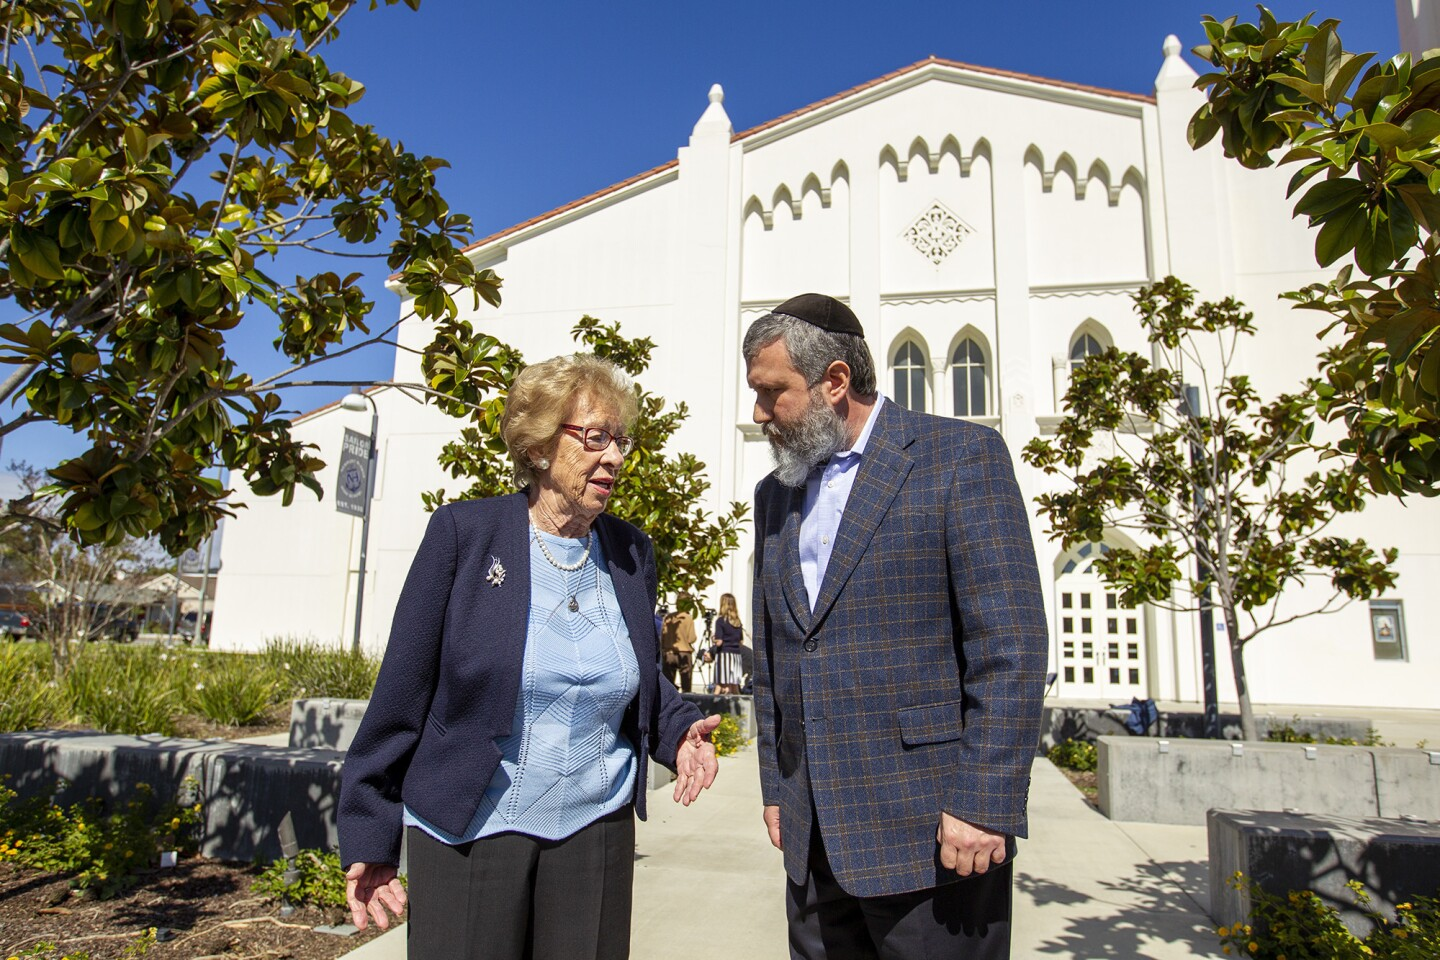 Eva Schloss, 89, a Holocaust survivor and Anne Frank's stepsister, speaks with Chabab Rabbi Reuven Mintz during a press conference at Newport Harbor High school on Thursday, March 7. Schloss met and talked with students invoived in a party made Nazi salutes around a Swastika that made of red cups during an off-campus party last week.